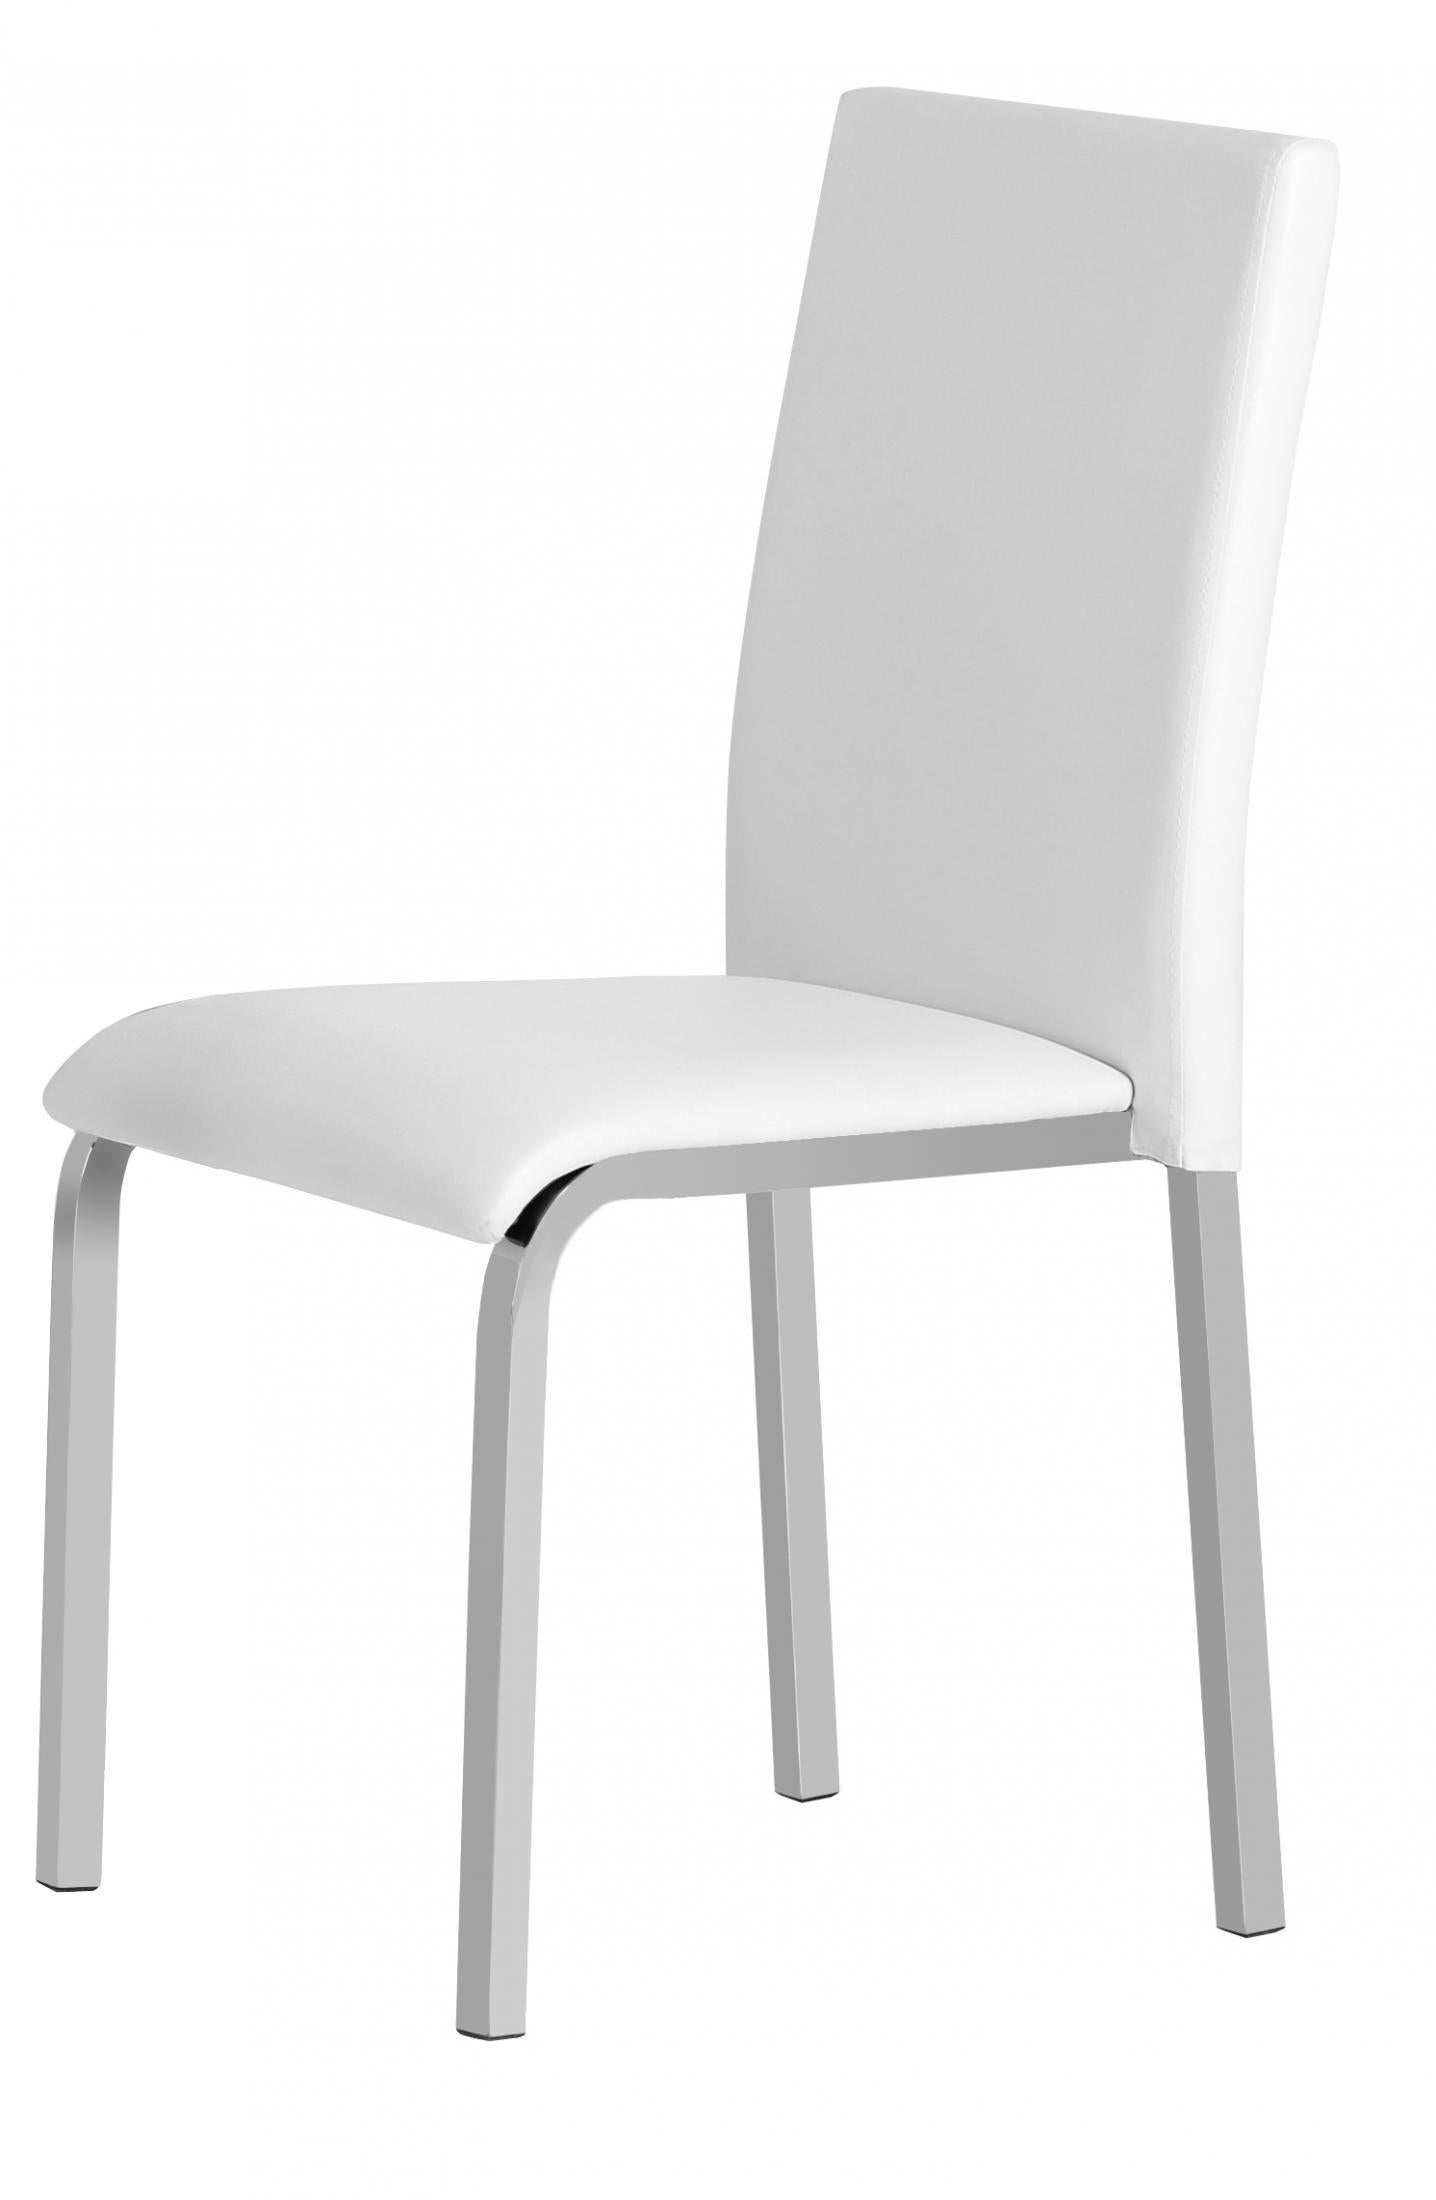 Gamma PVC Chair White & Chrome